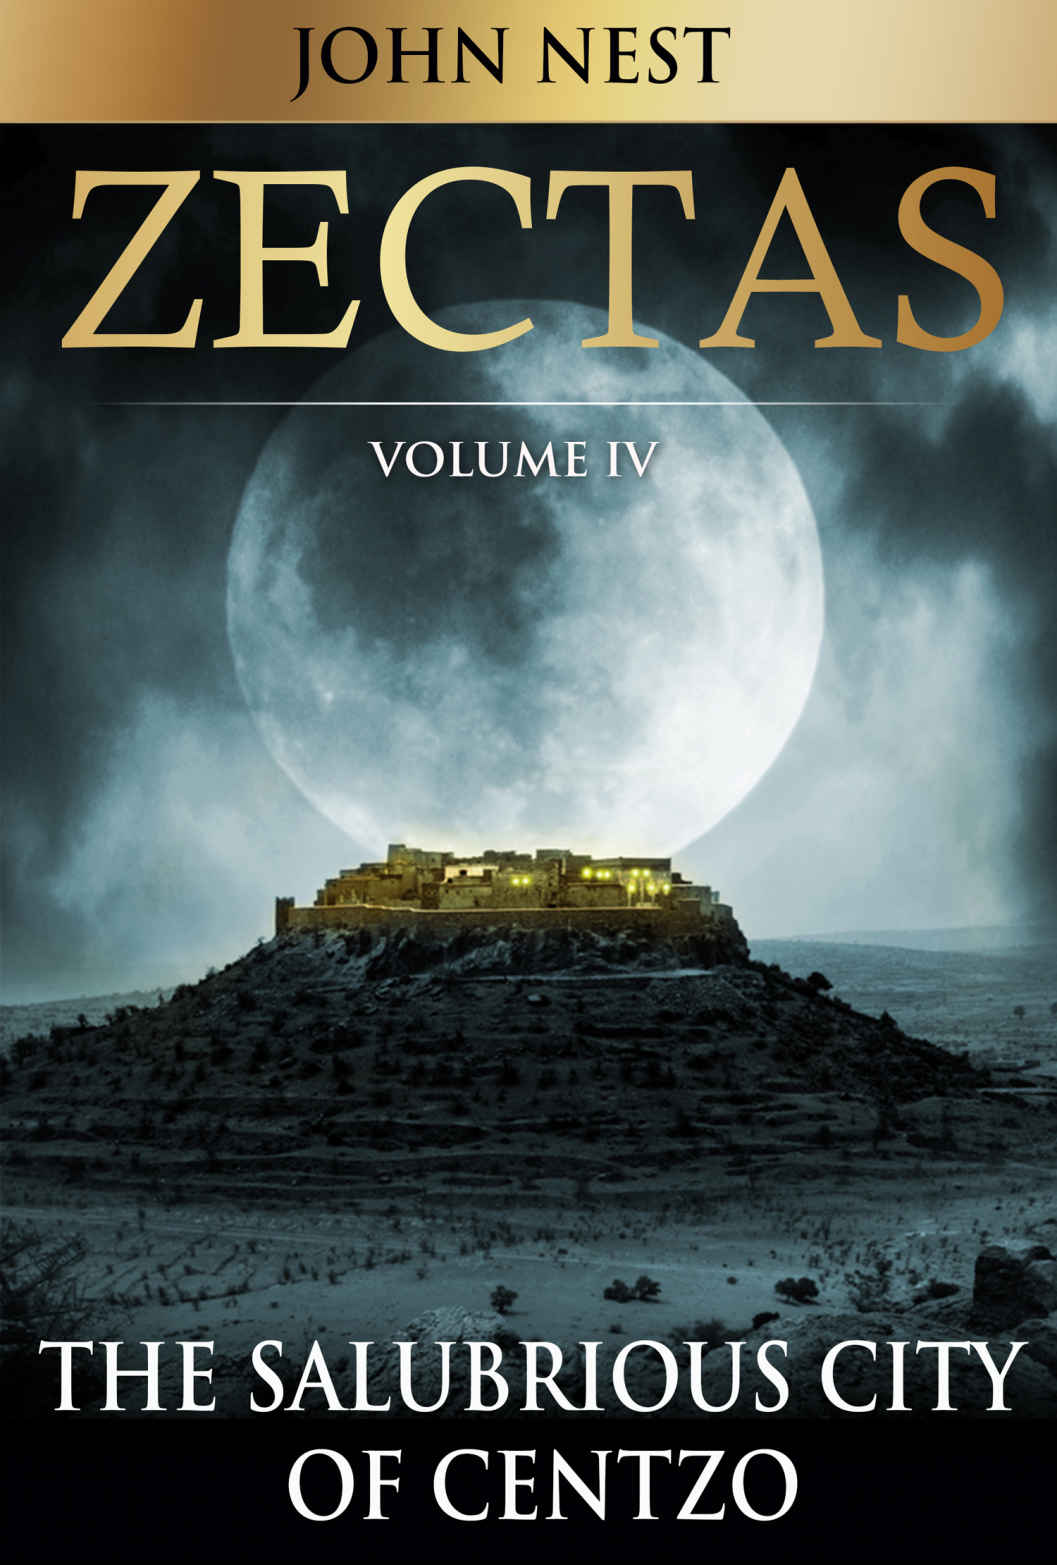 The Salubrious City of Centzo (Zectas #4) by John Nest